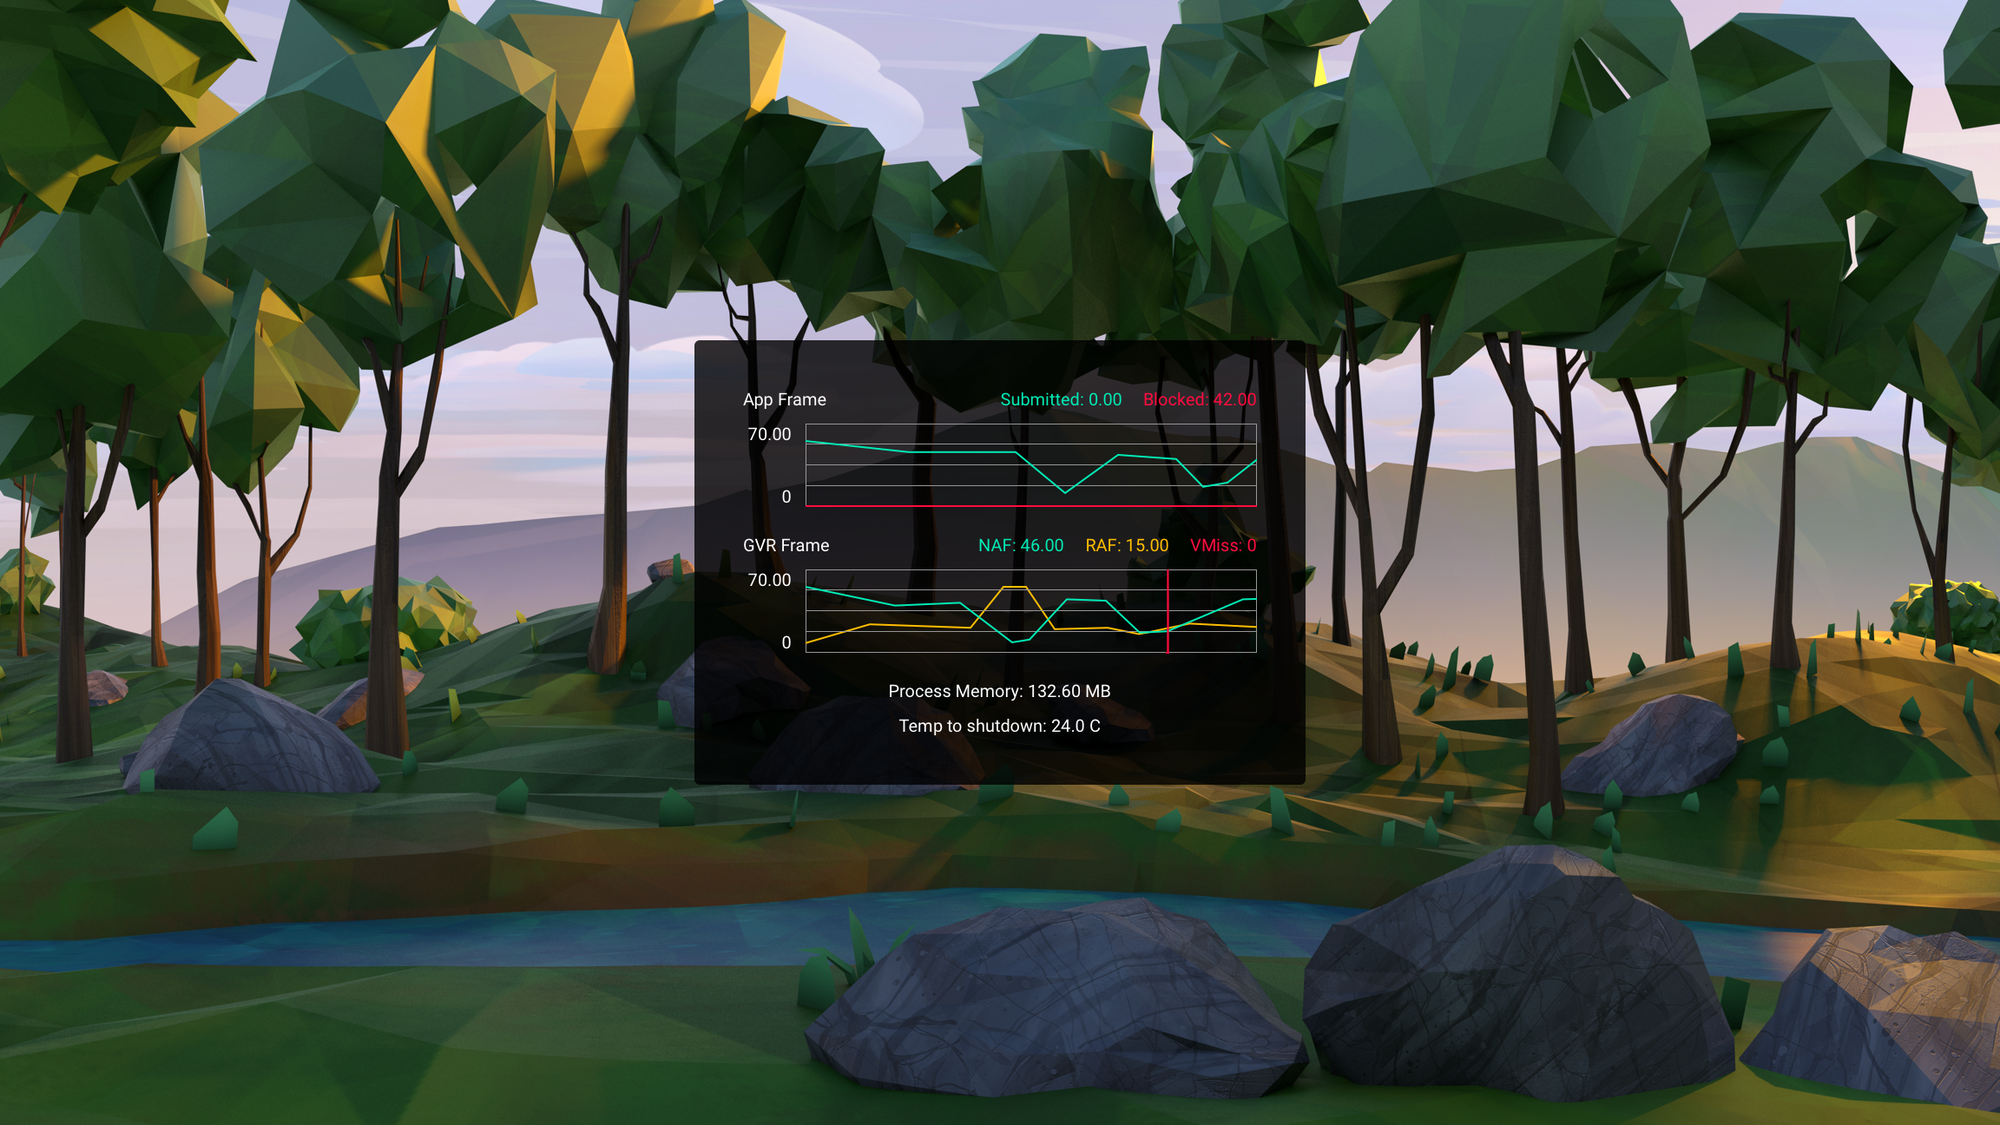 Building for Daydream will get simpler with new instruments